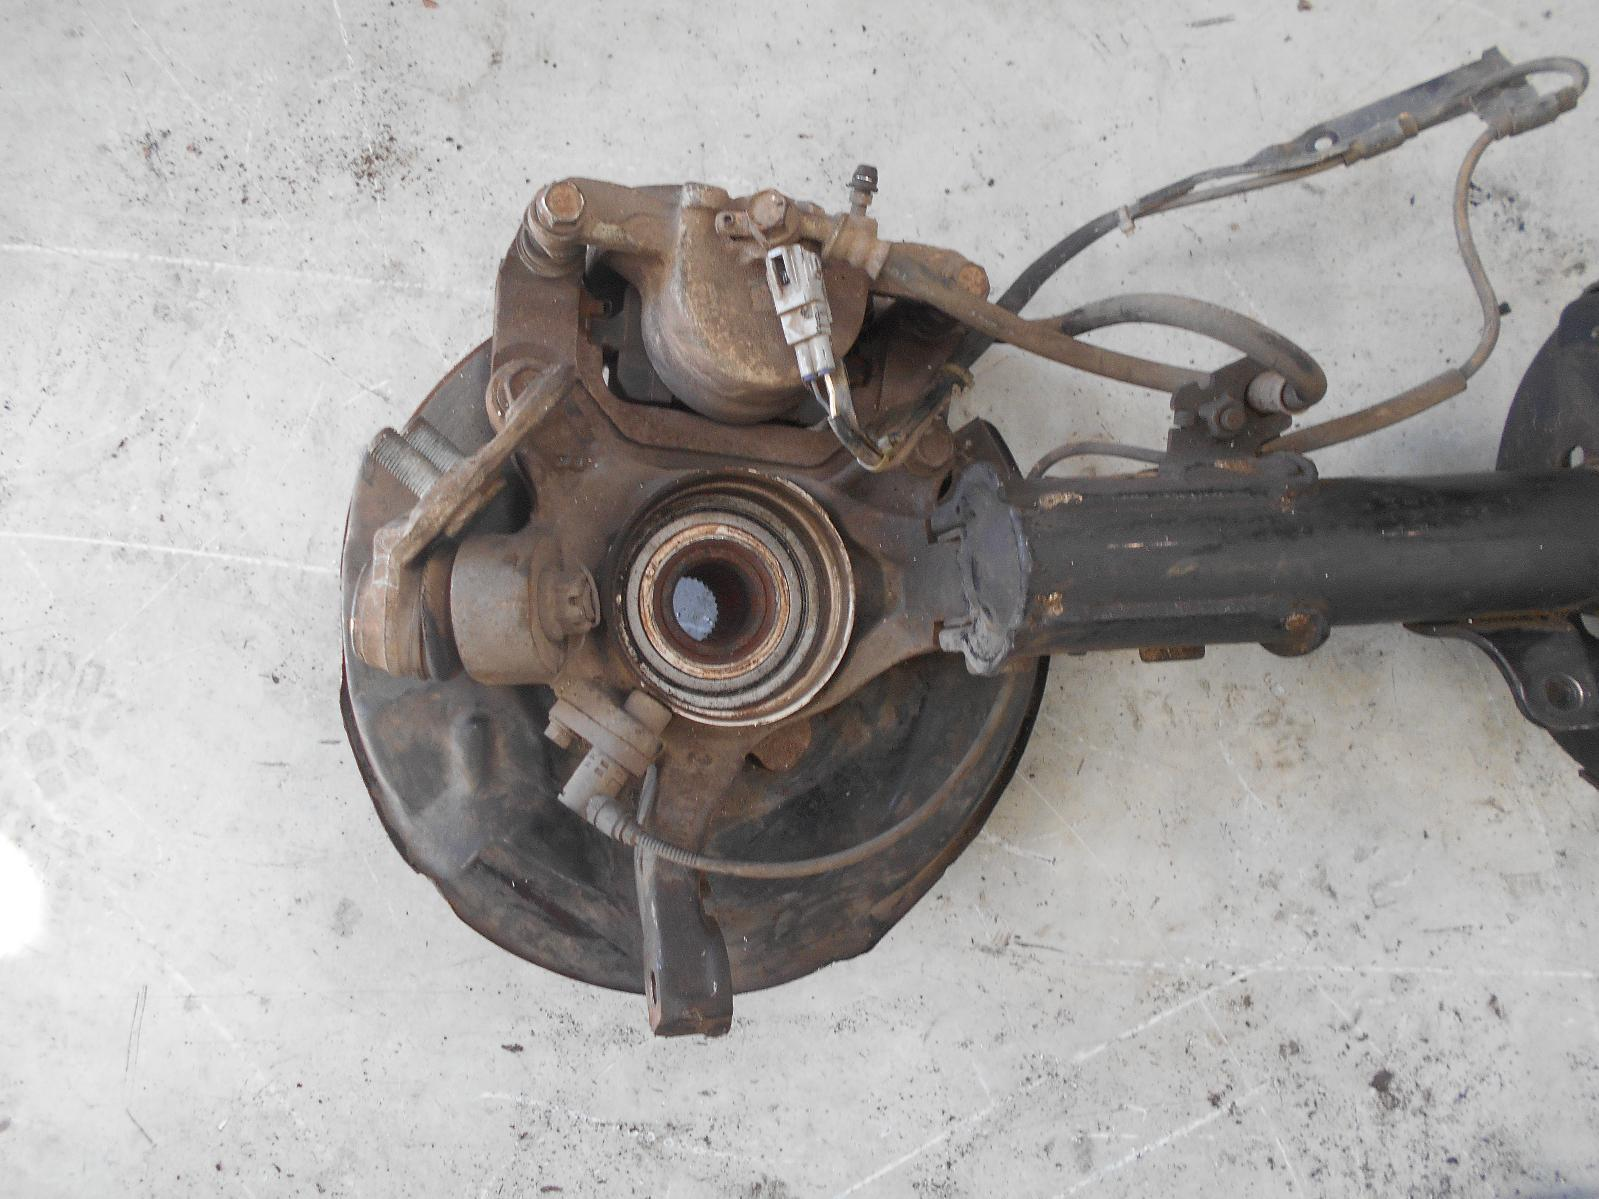 TOYOTA CAMRY, Right Front Hub Assembly, SK20, 2.2, 5S-FE, NON ABS, 08/97-08/02